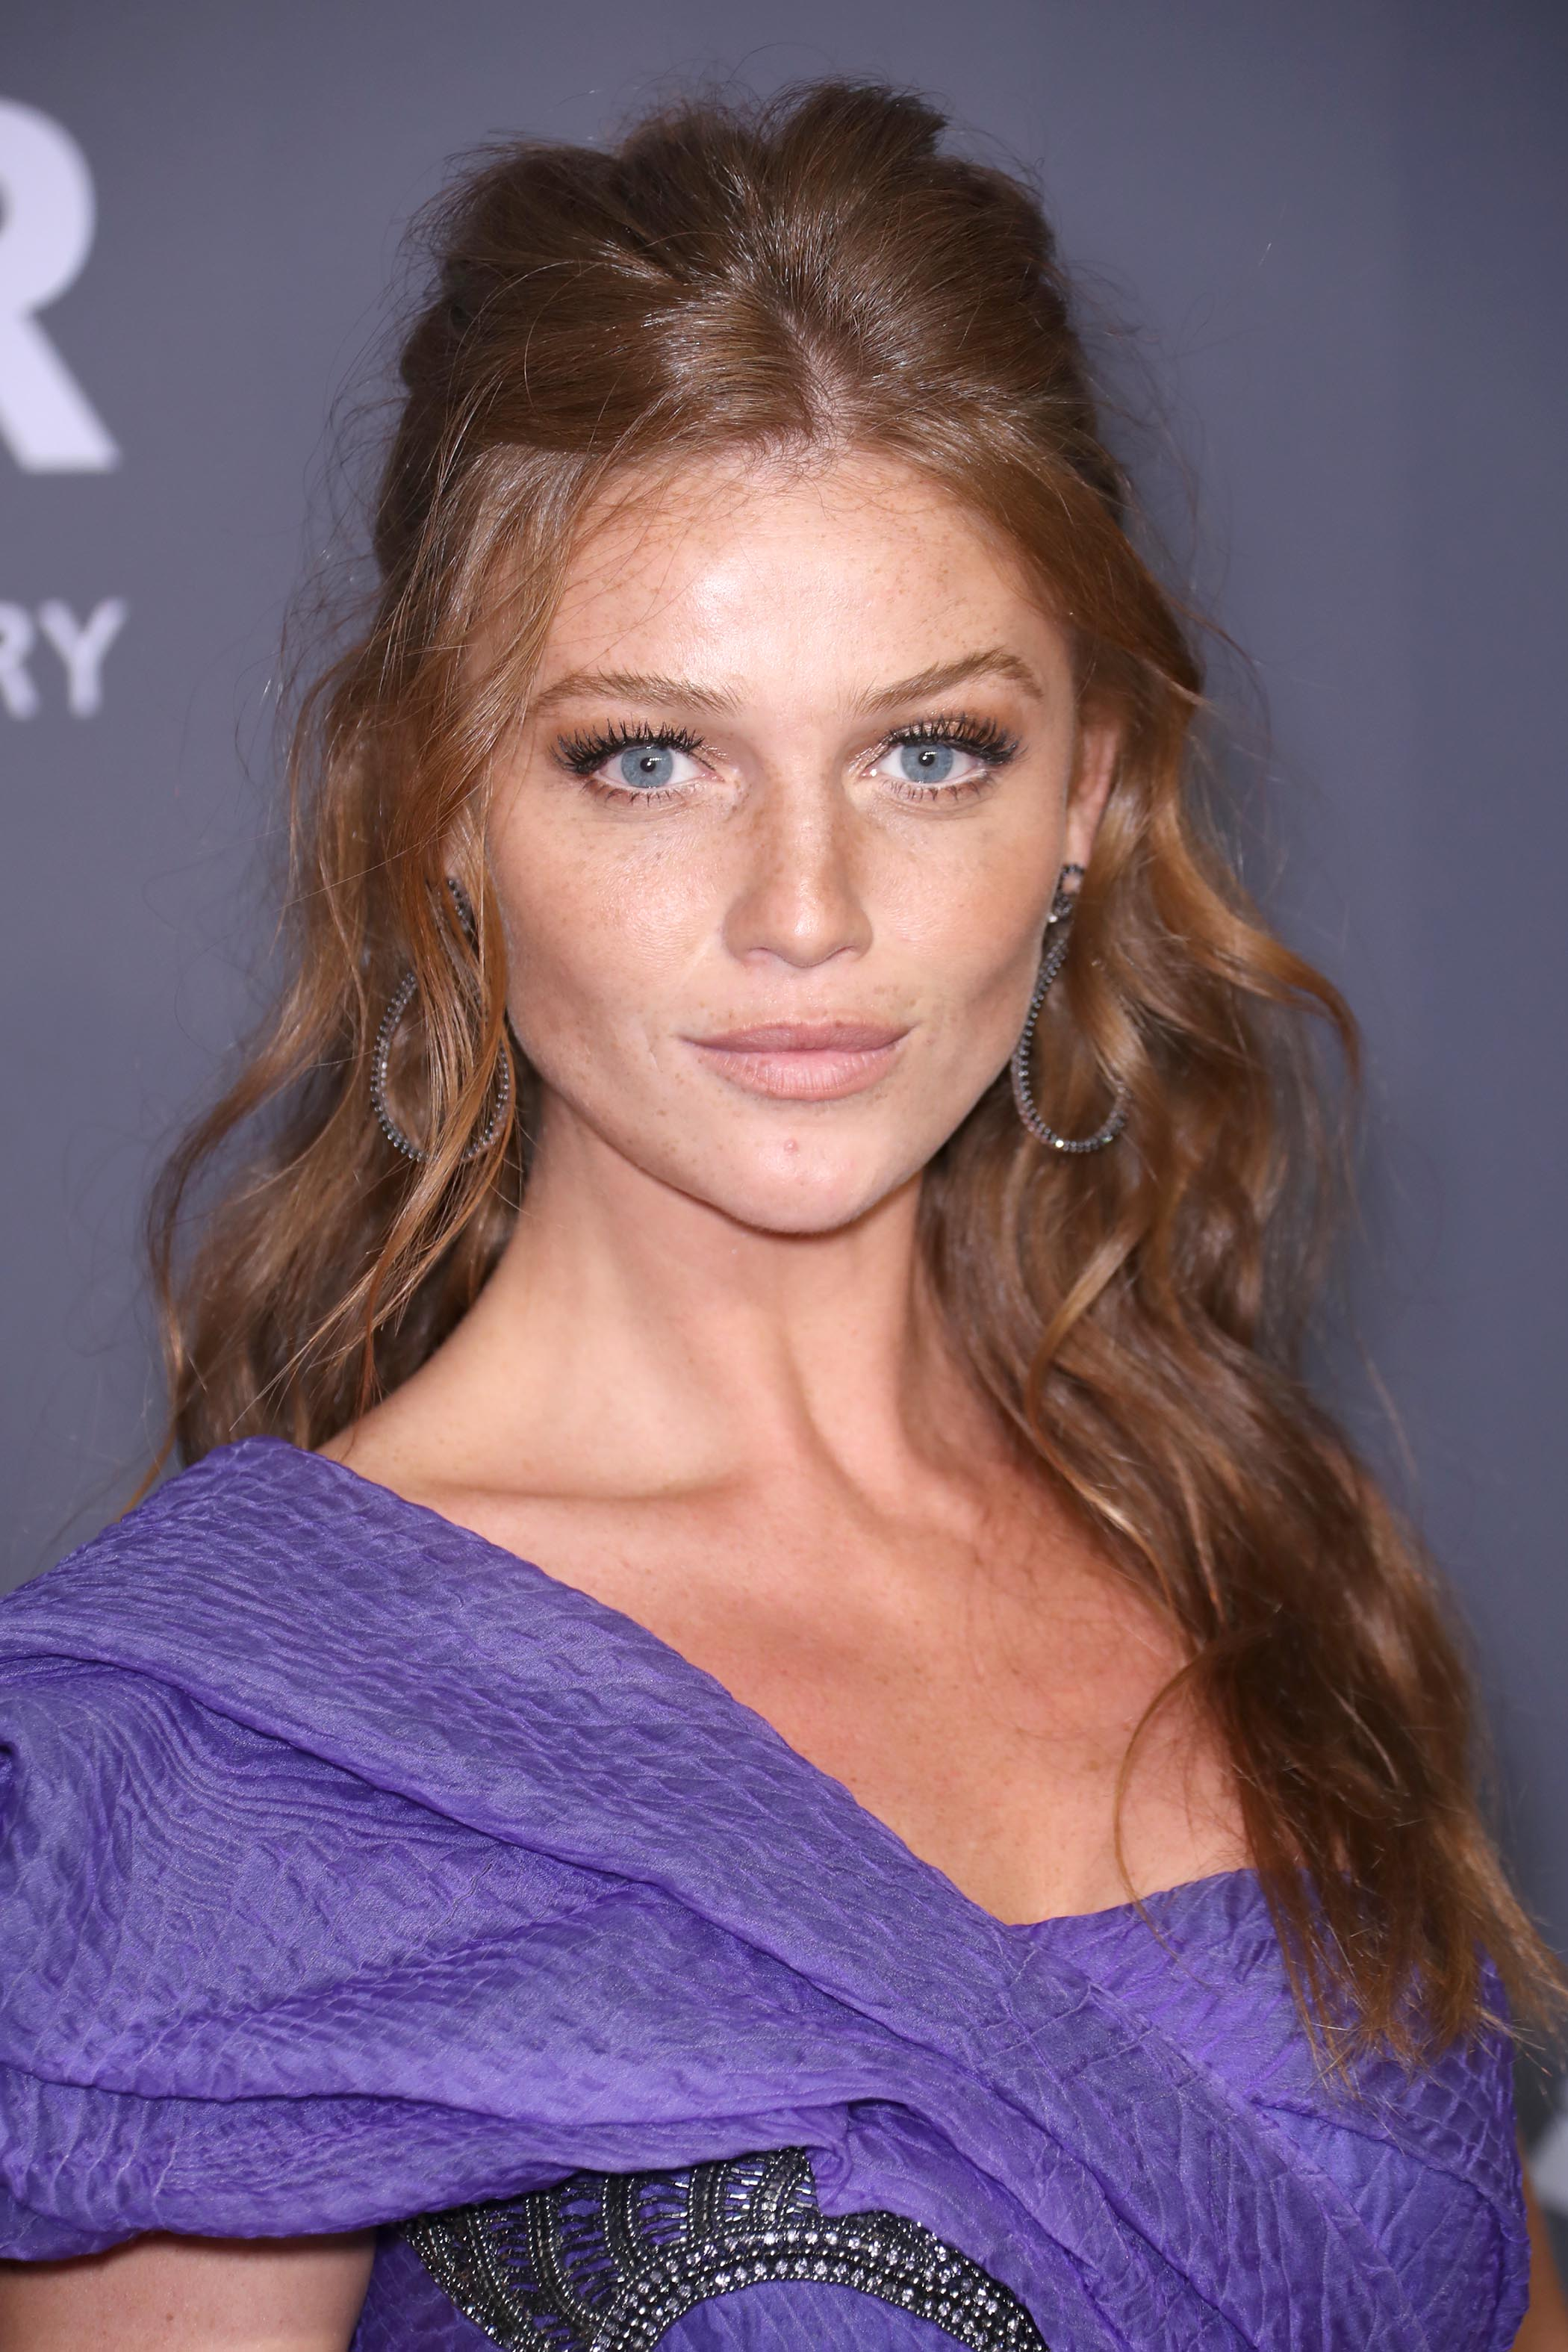 Long hairstyle ideas: Cintia Dicker with long red-brown hair styled into a voluminous half-up hairstyle